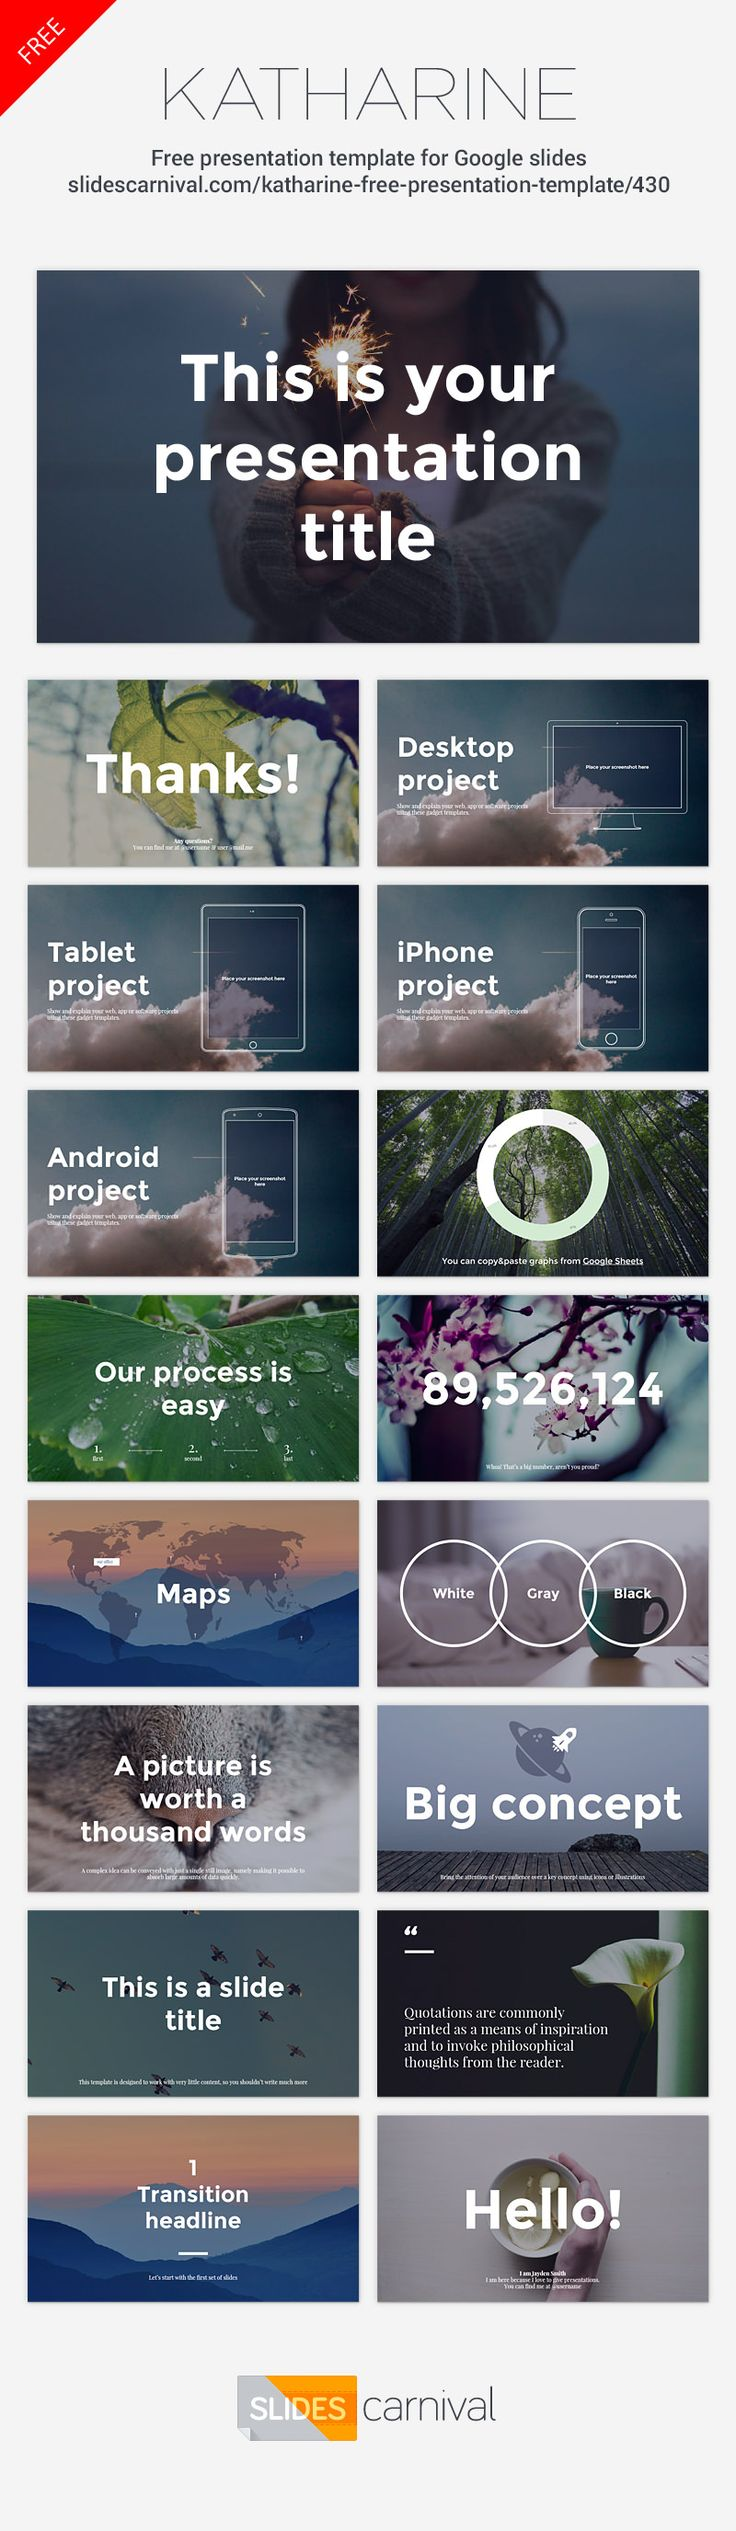 586 best Video Templates images on Pinterest | Cards, Clock and Clocks